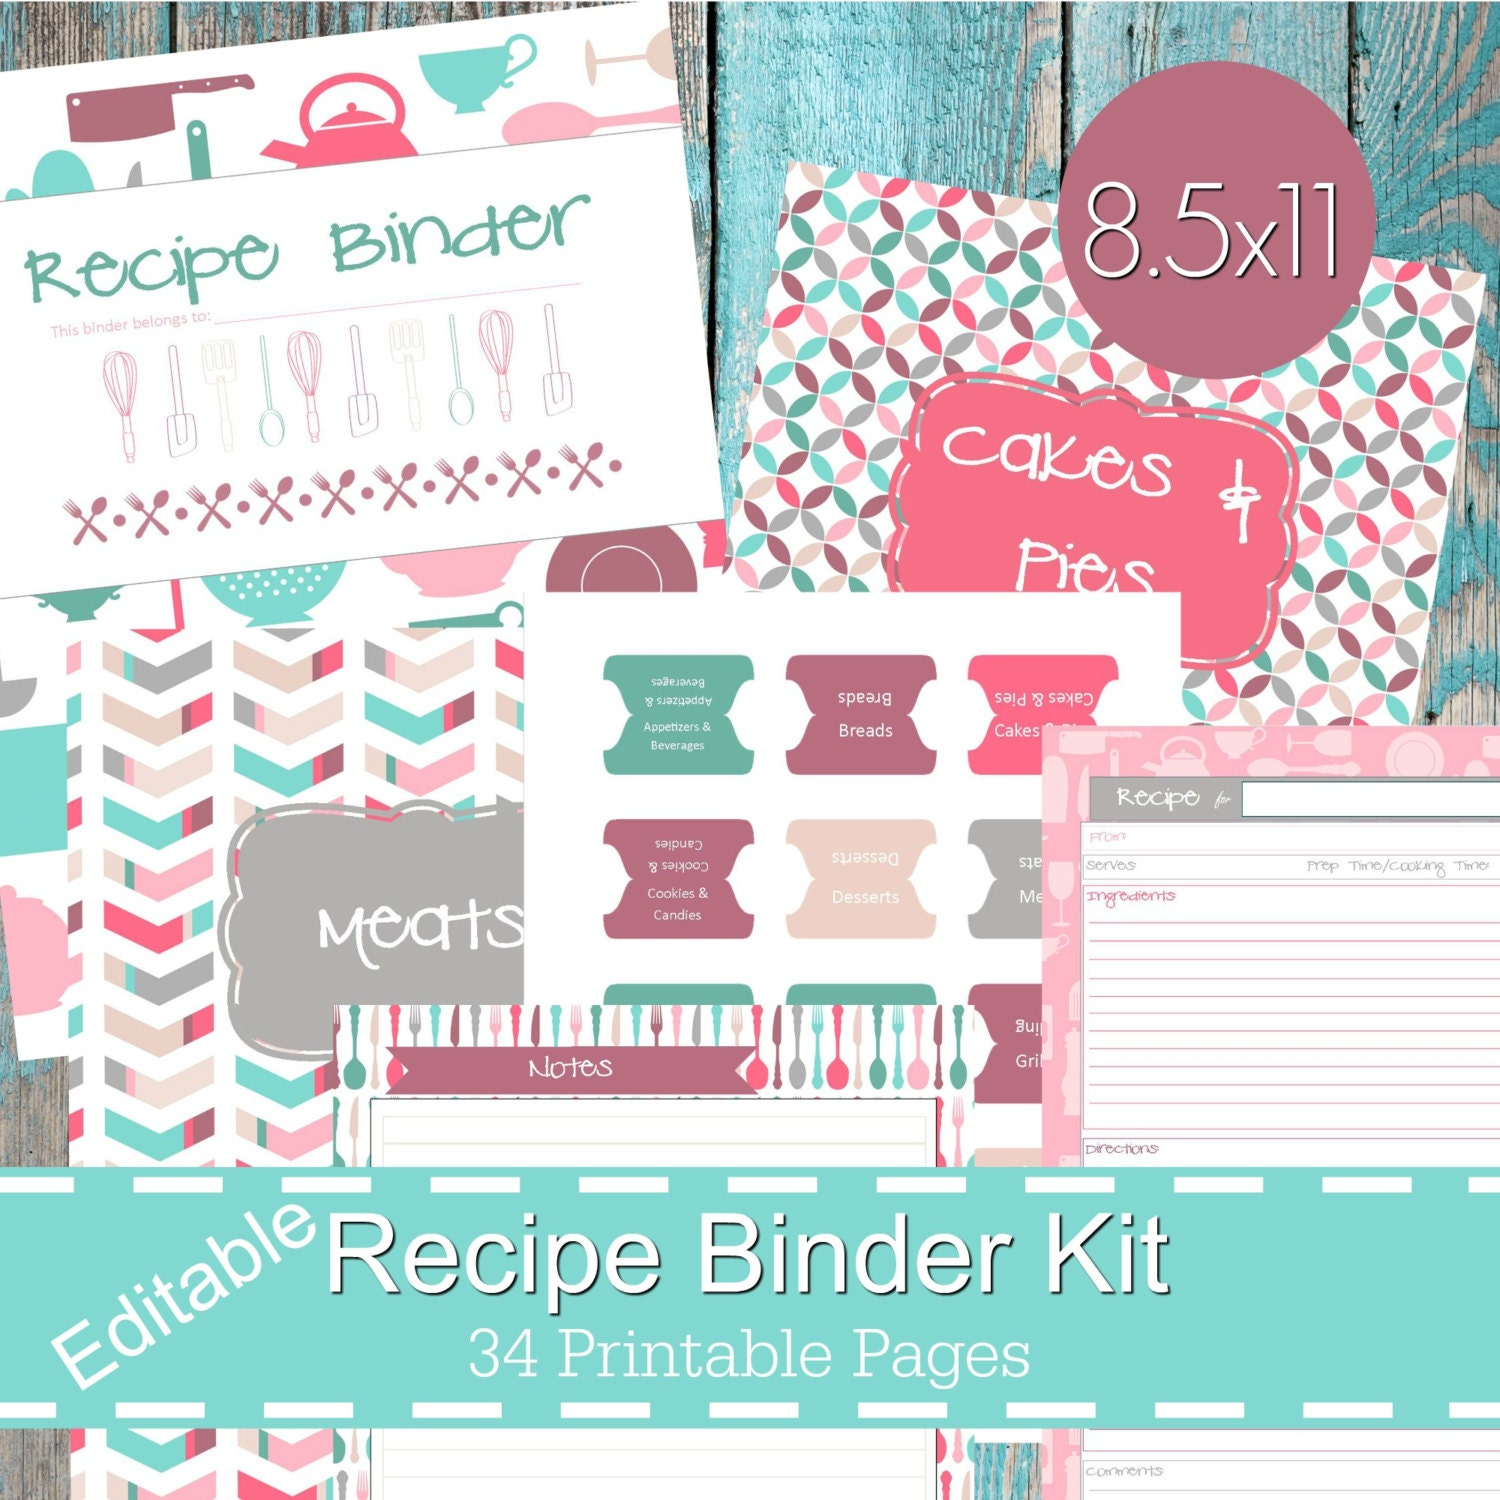 Geeky image pertaining to free printable recipe binder kit